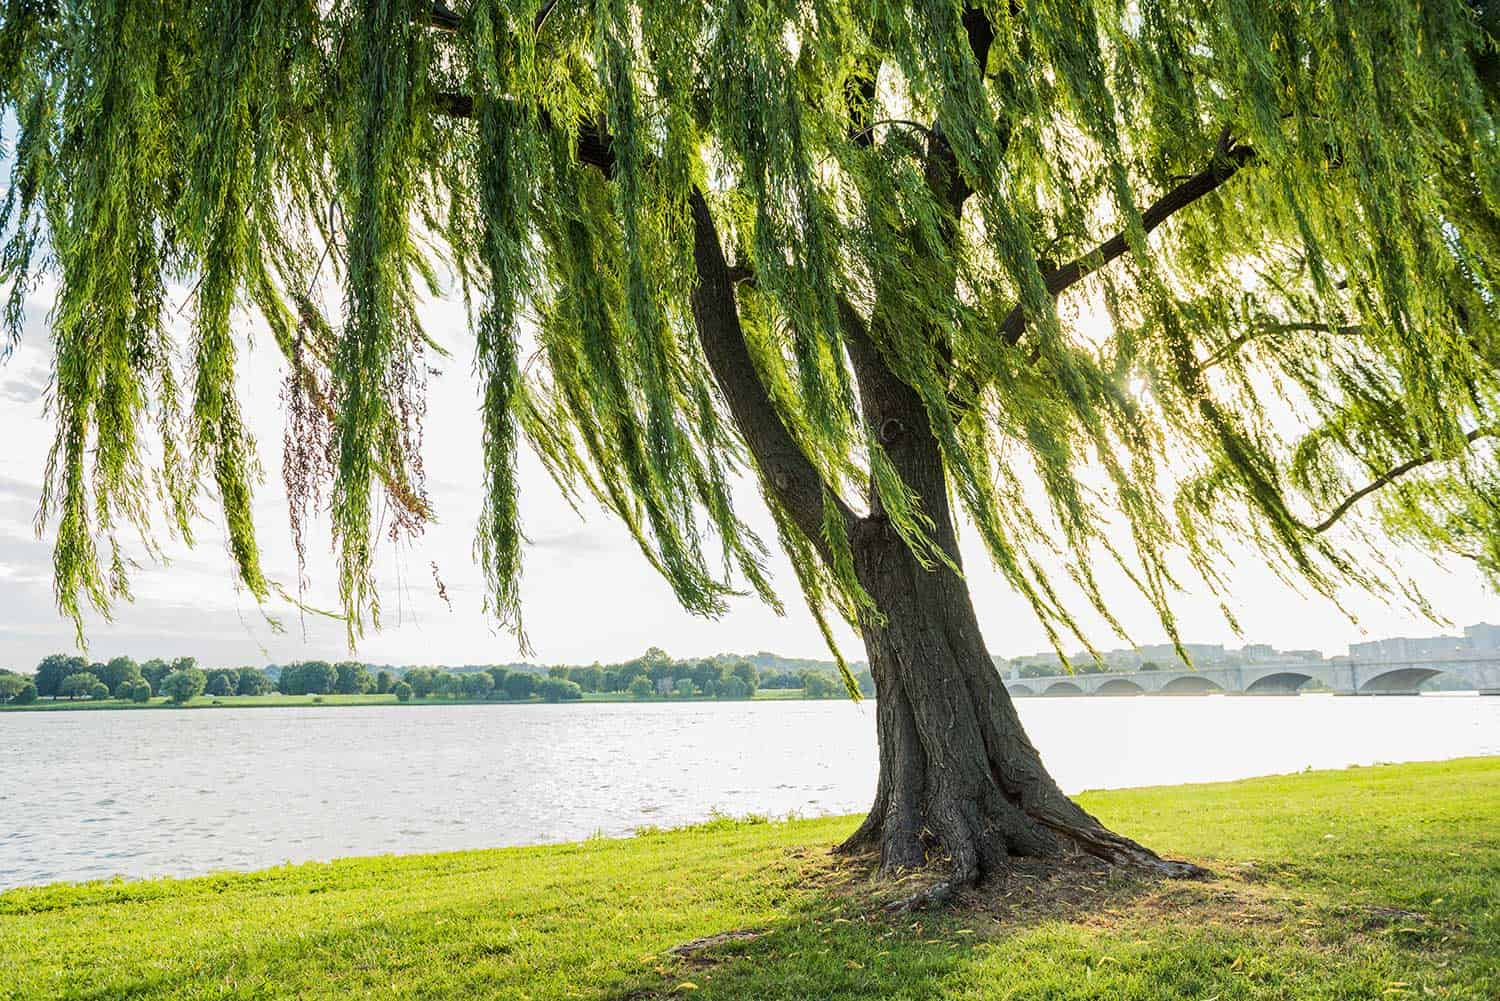 Willow tree swaying in wind by the river